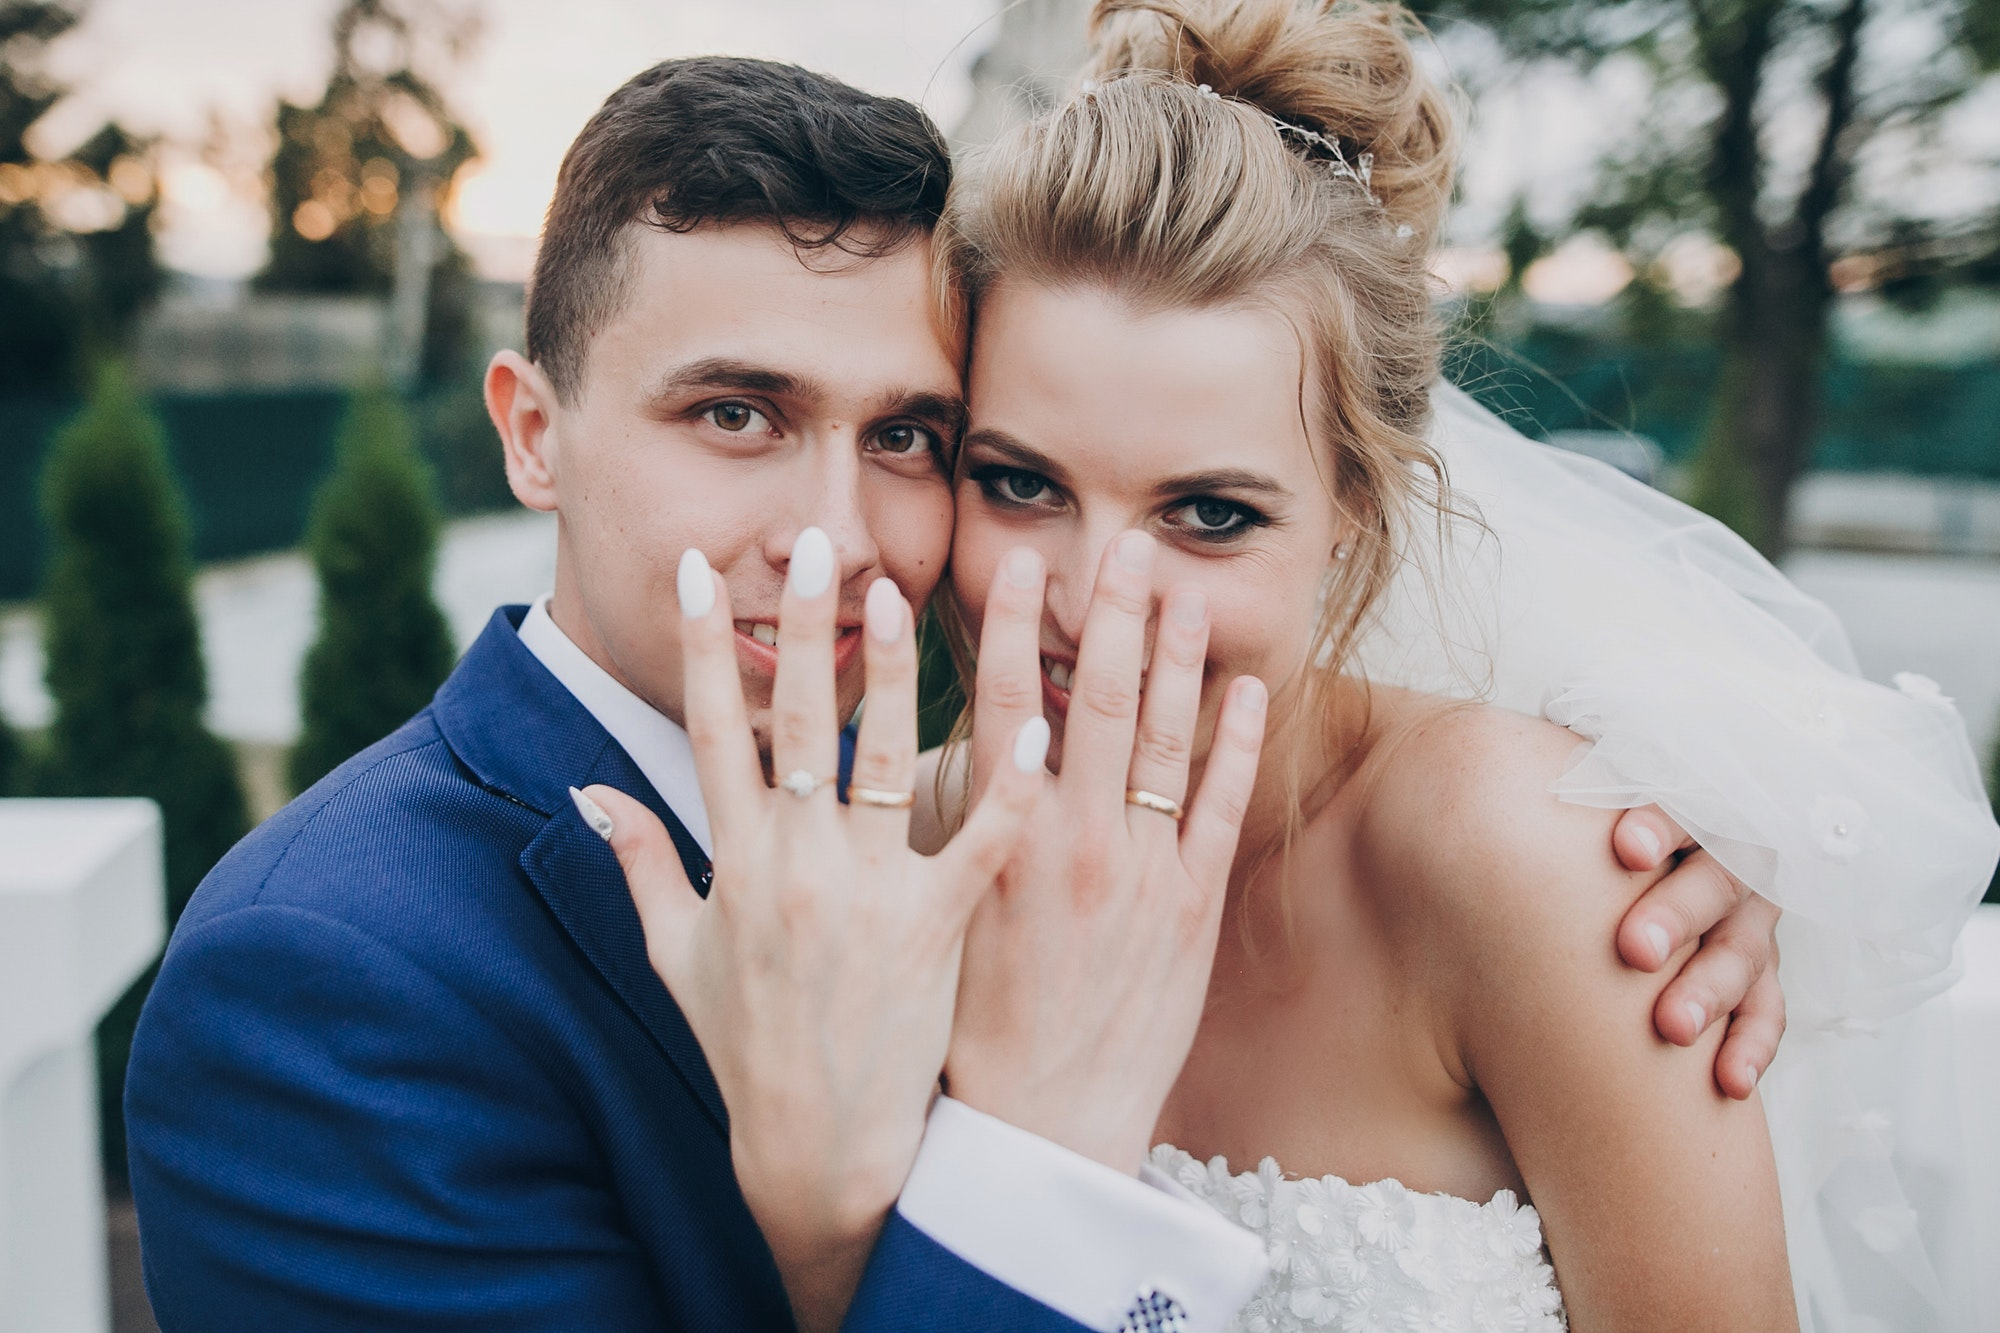 Just married. Stylish happy bride and groom showing hands with wedding rings